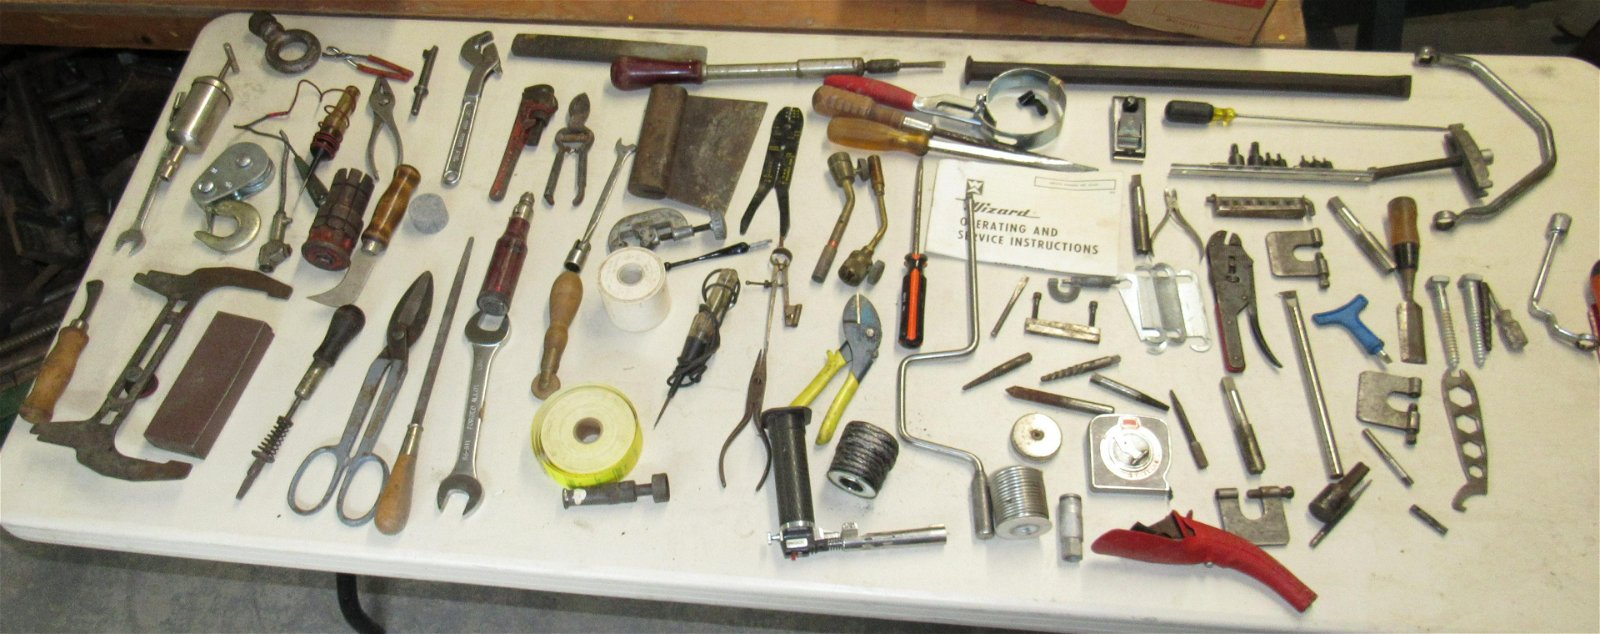 Table Contents of Misc Tools